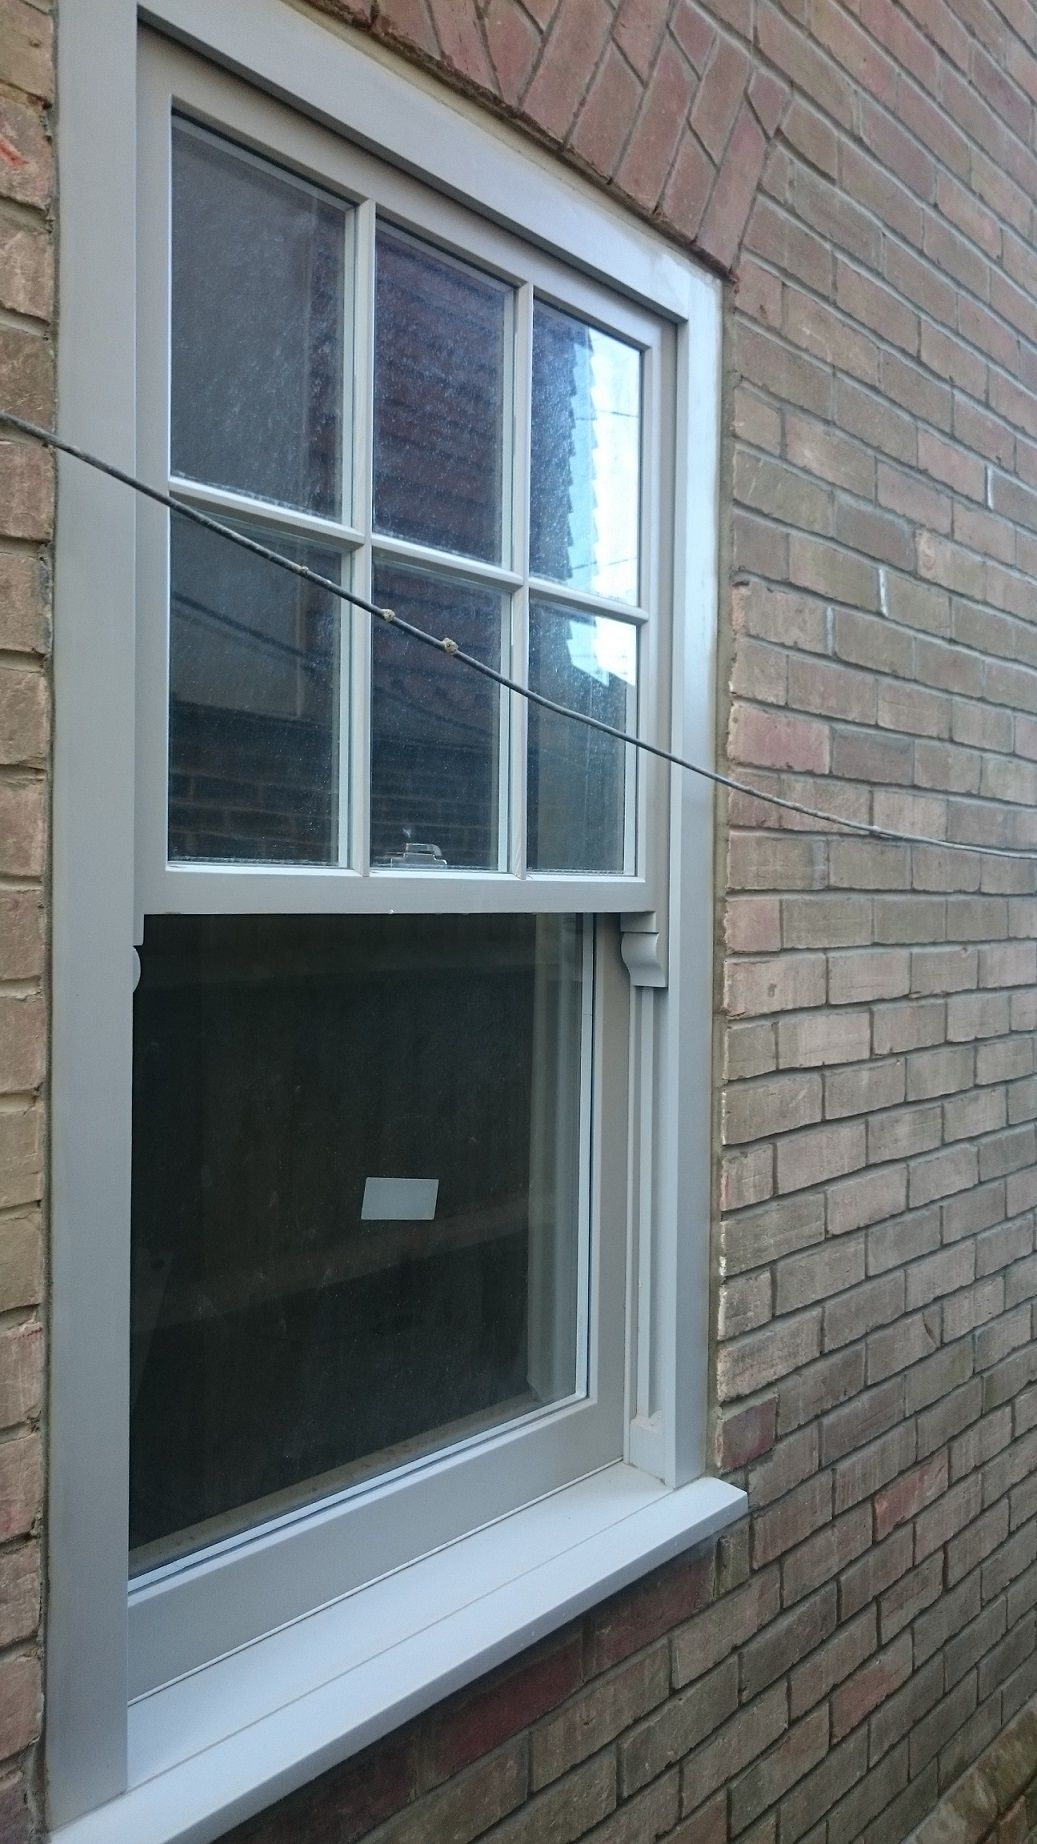 6 Over 1 Sash Windows Finished In Ral 7044 Supplied By Timber